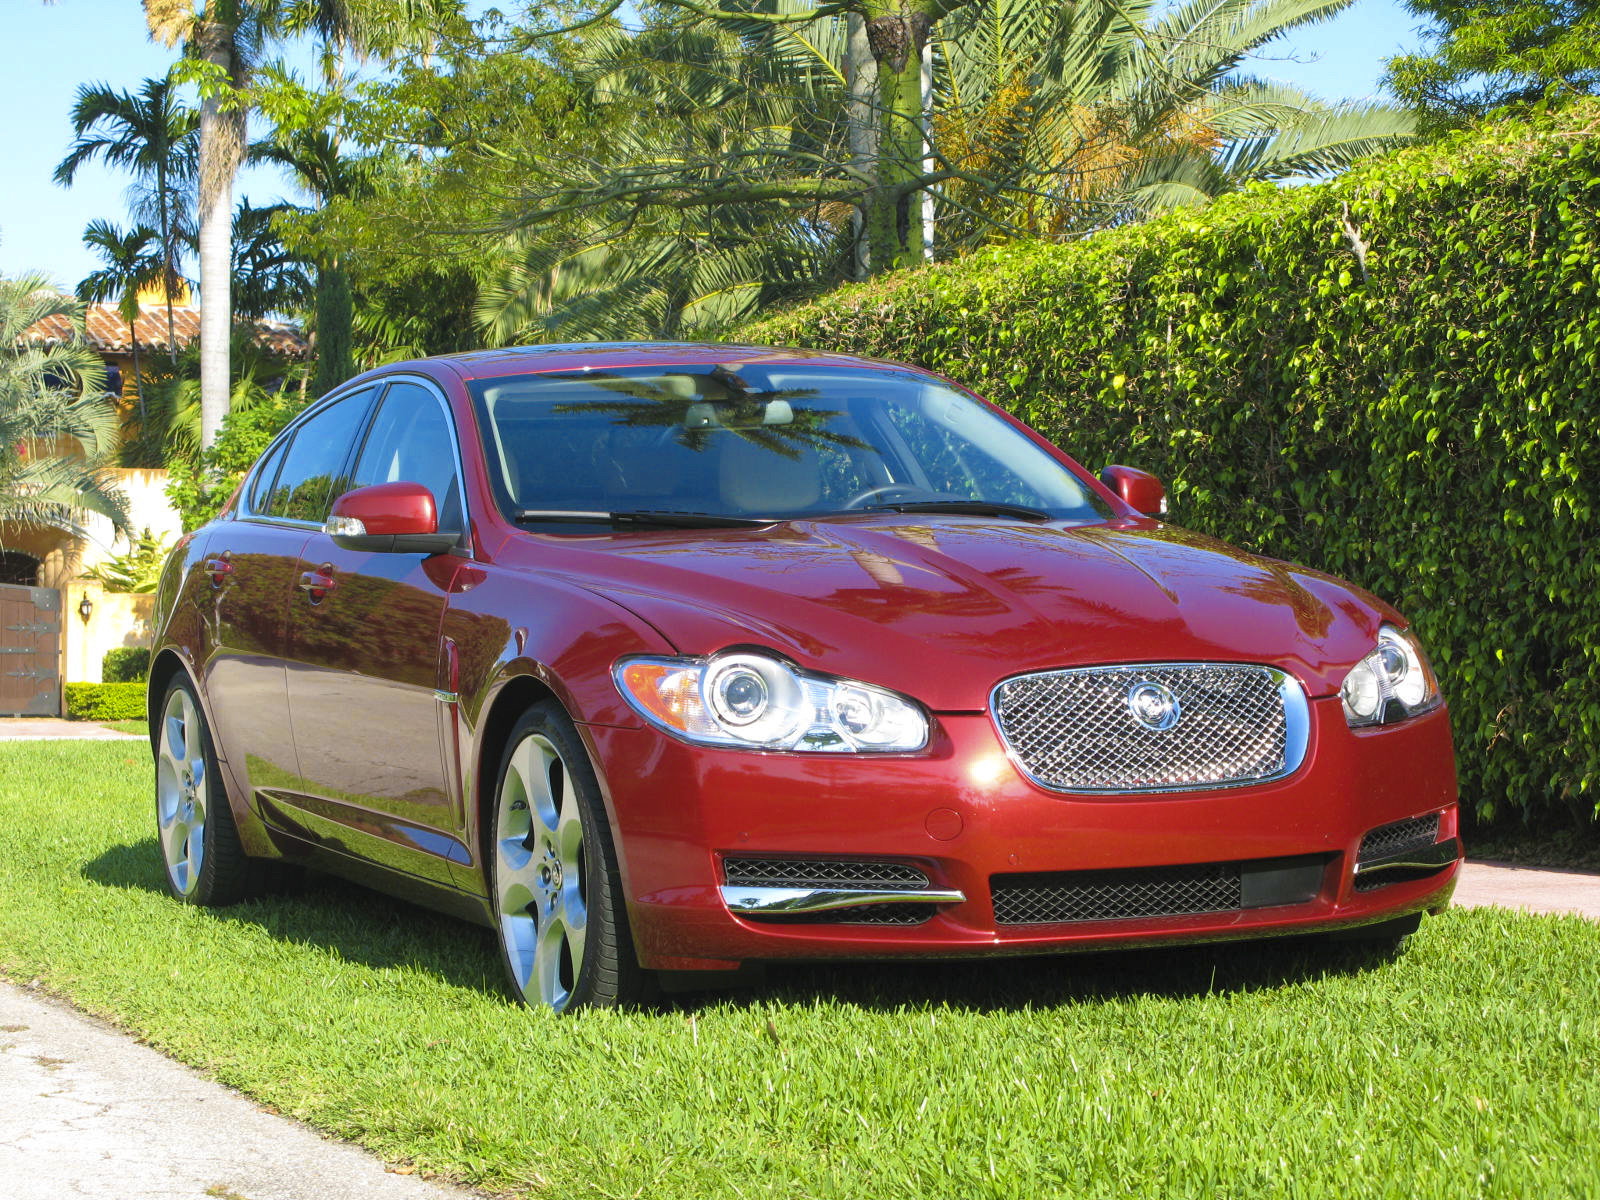 2009 jaguar xf supercharged picture 301916 car review top speed. Black Bedroom Furniture Sets. Home Design Ideas